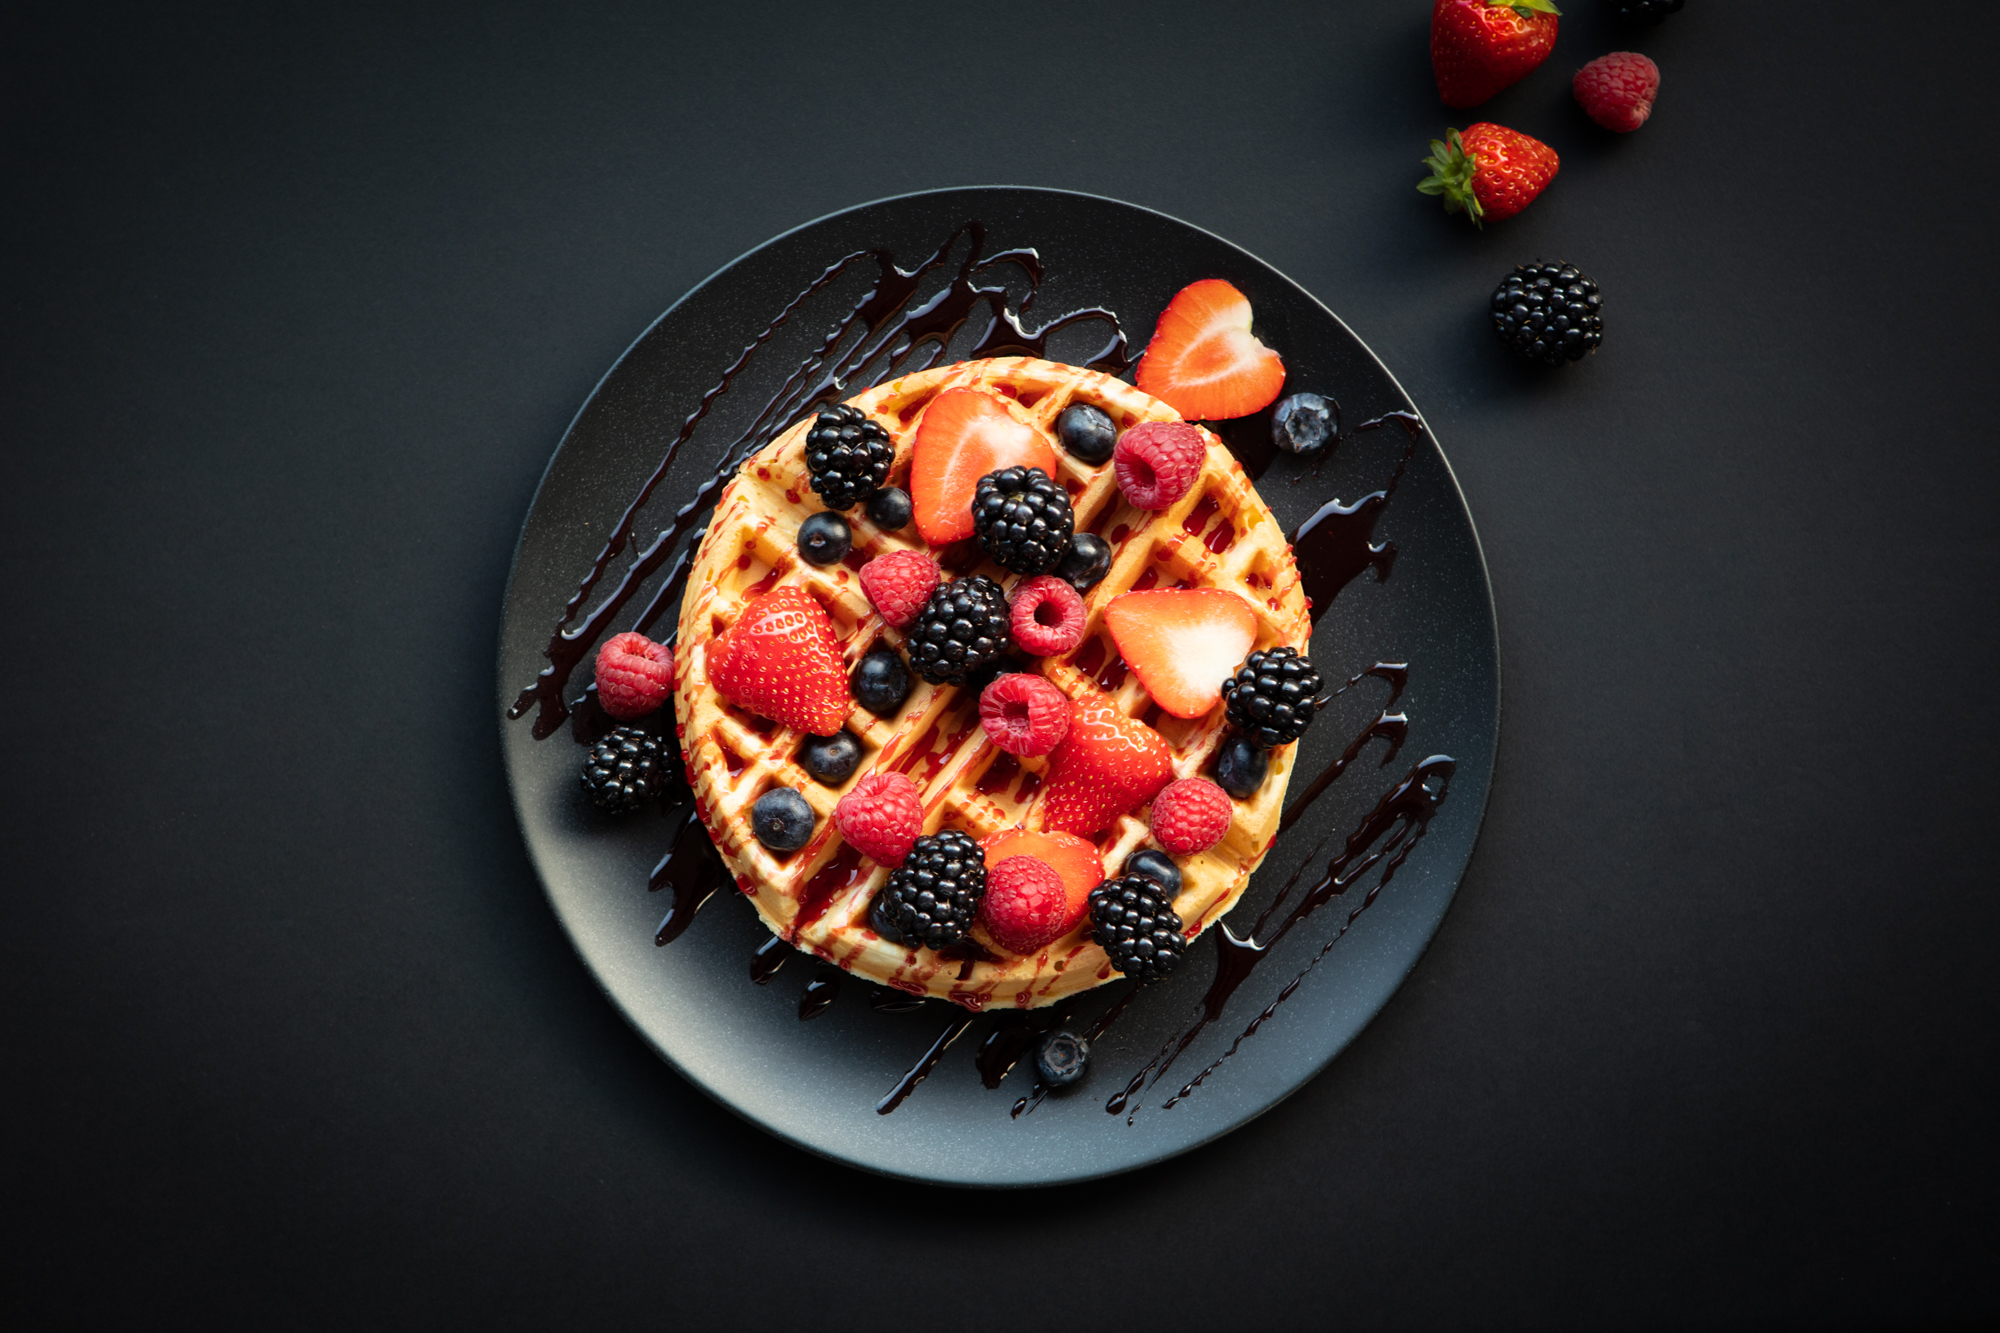 freshly made waffle topped with fresh fruit and fruit sauce